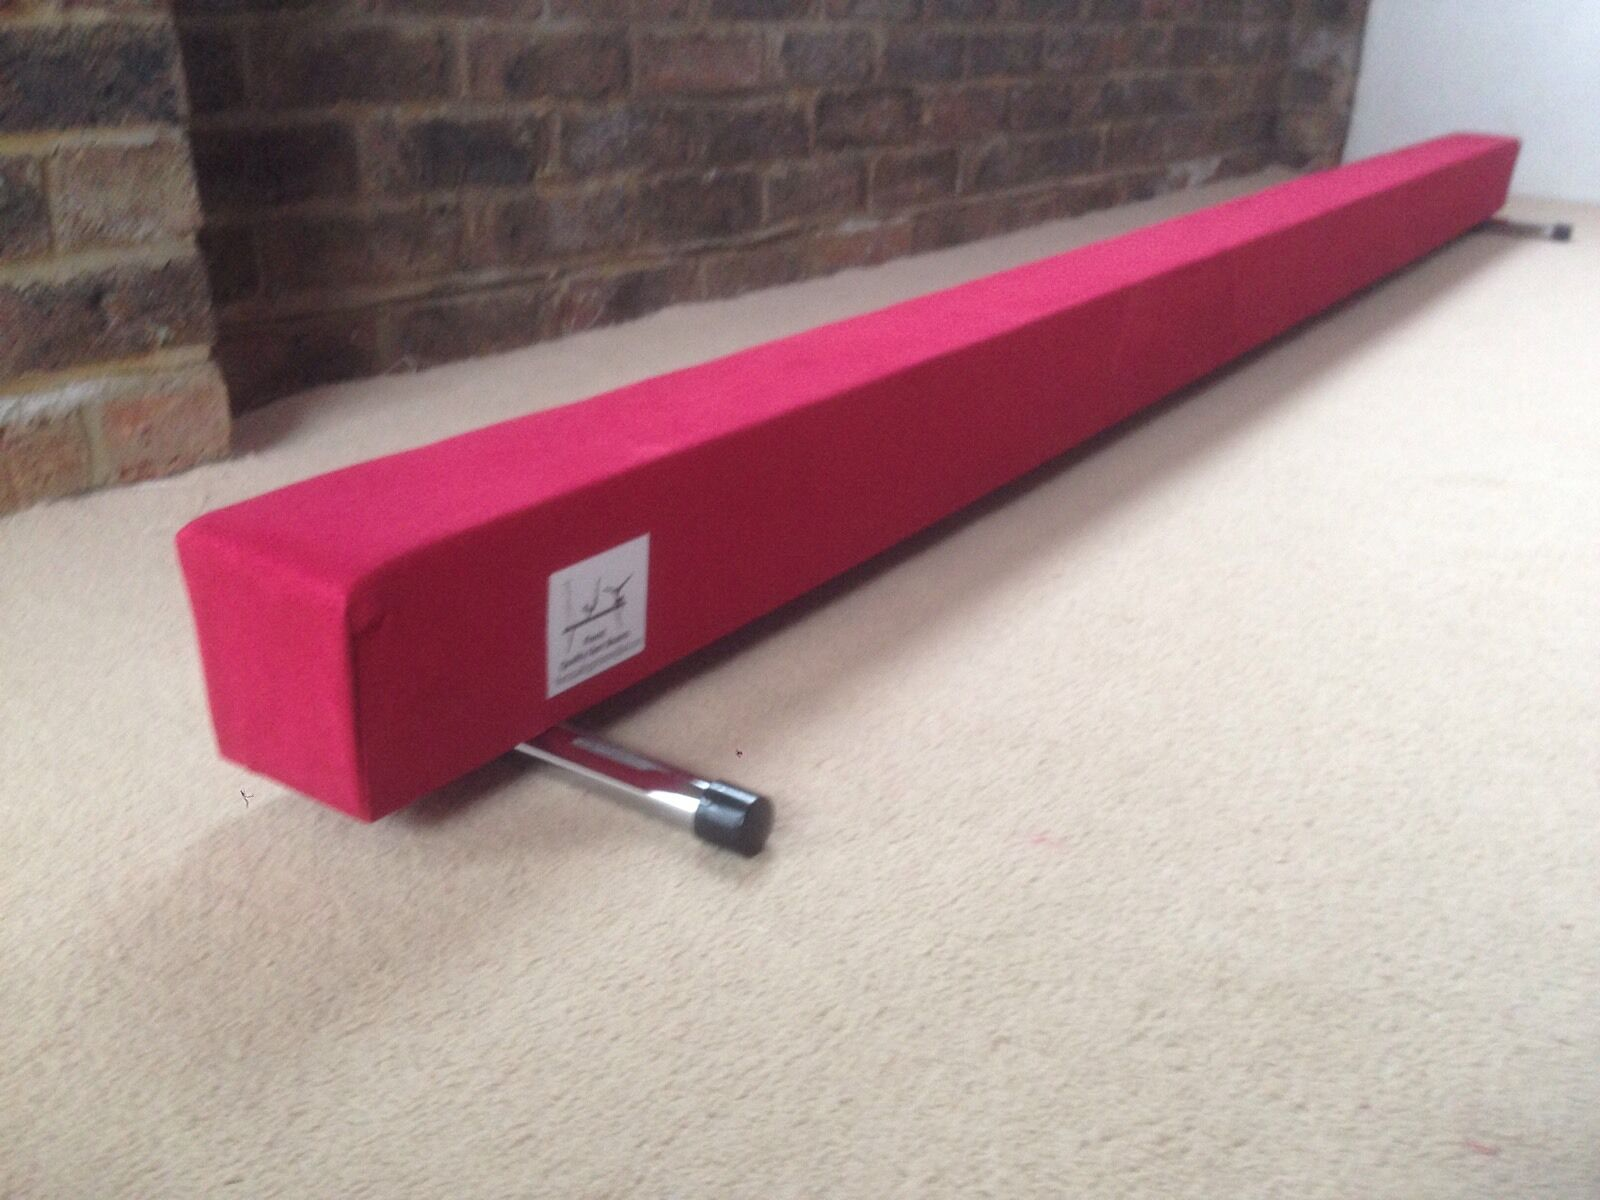 Finest quality gymnastics gym balance beam 6FT long choice of colours brand new